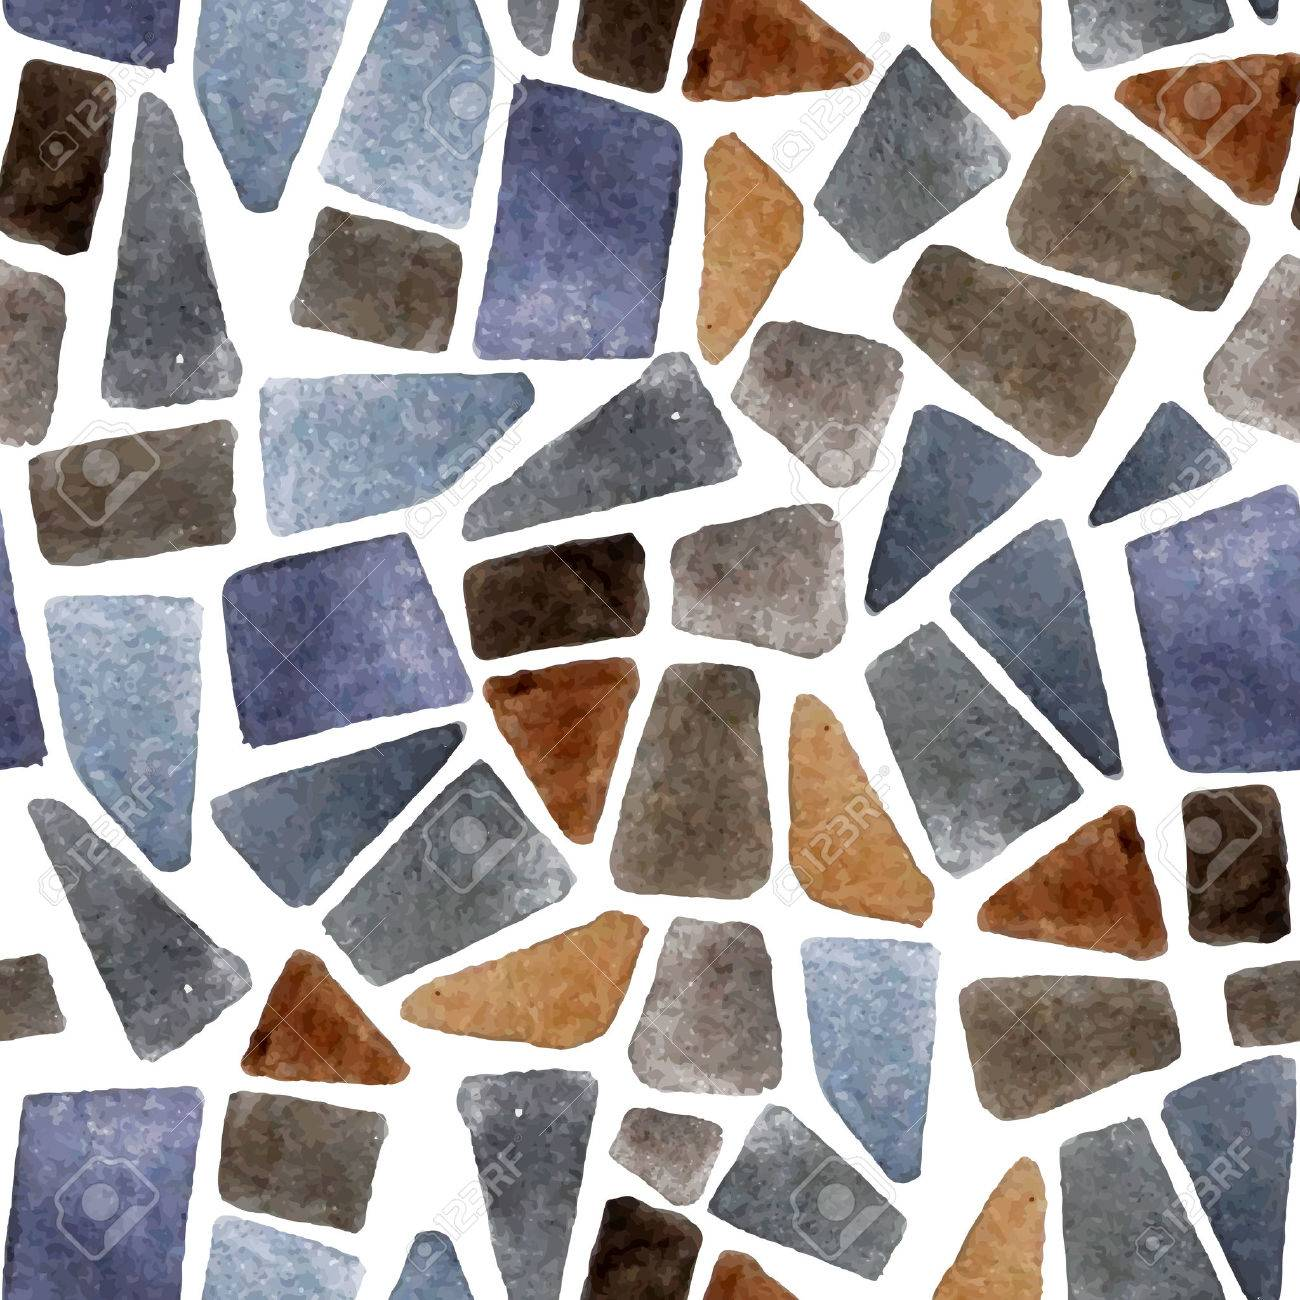 Watercolor seamless stone texture for your designs - 42038755